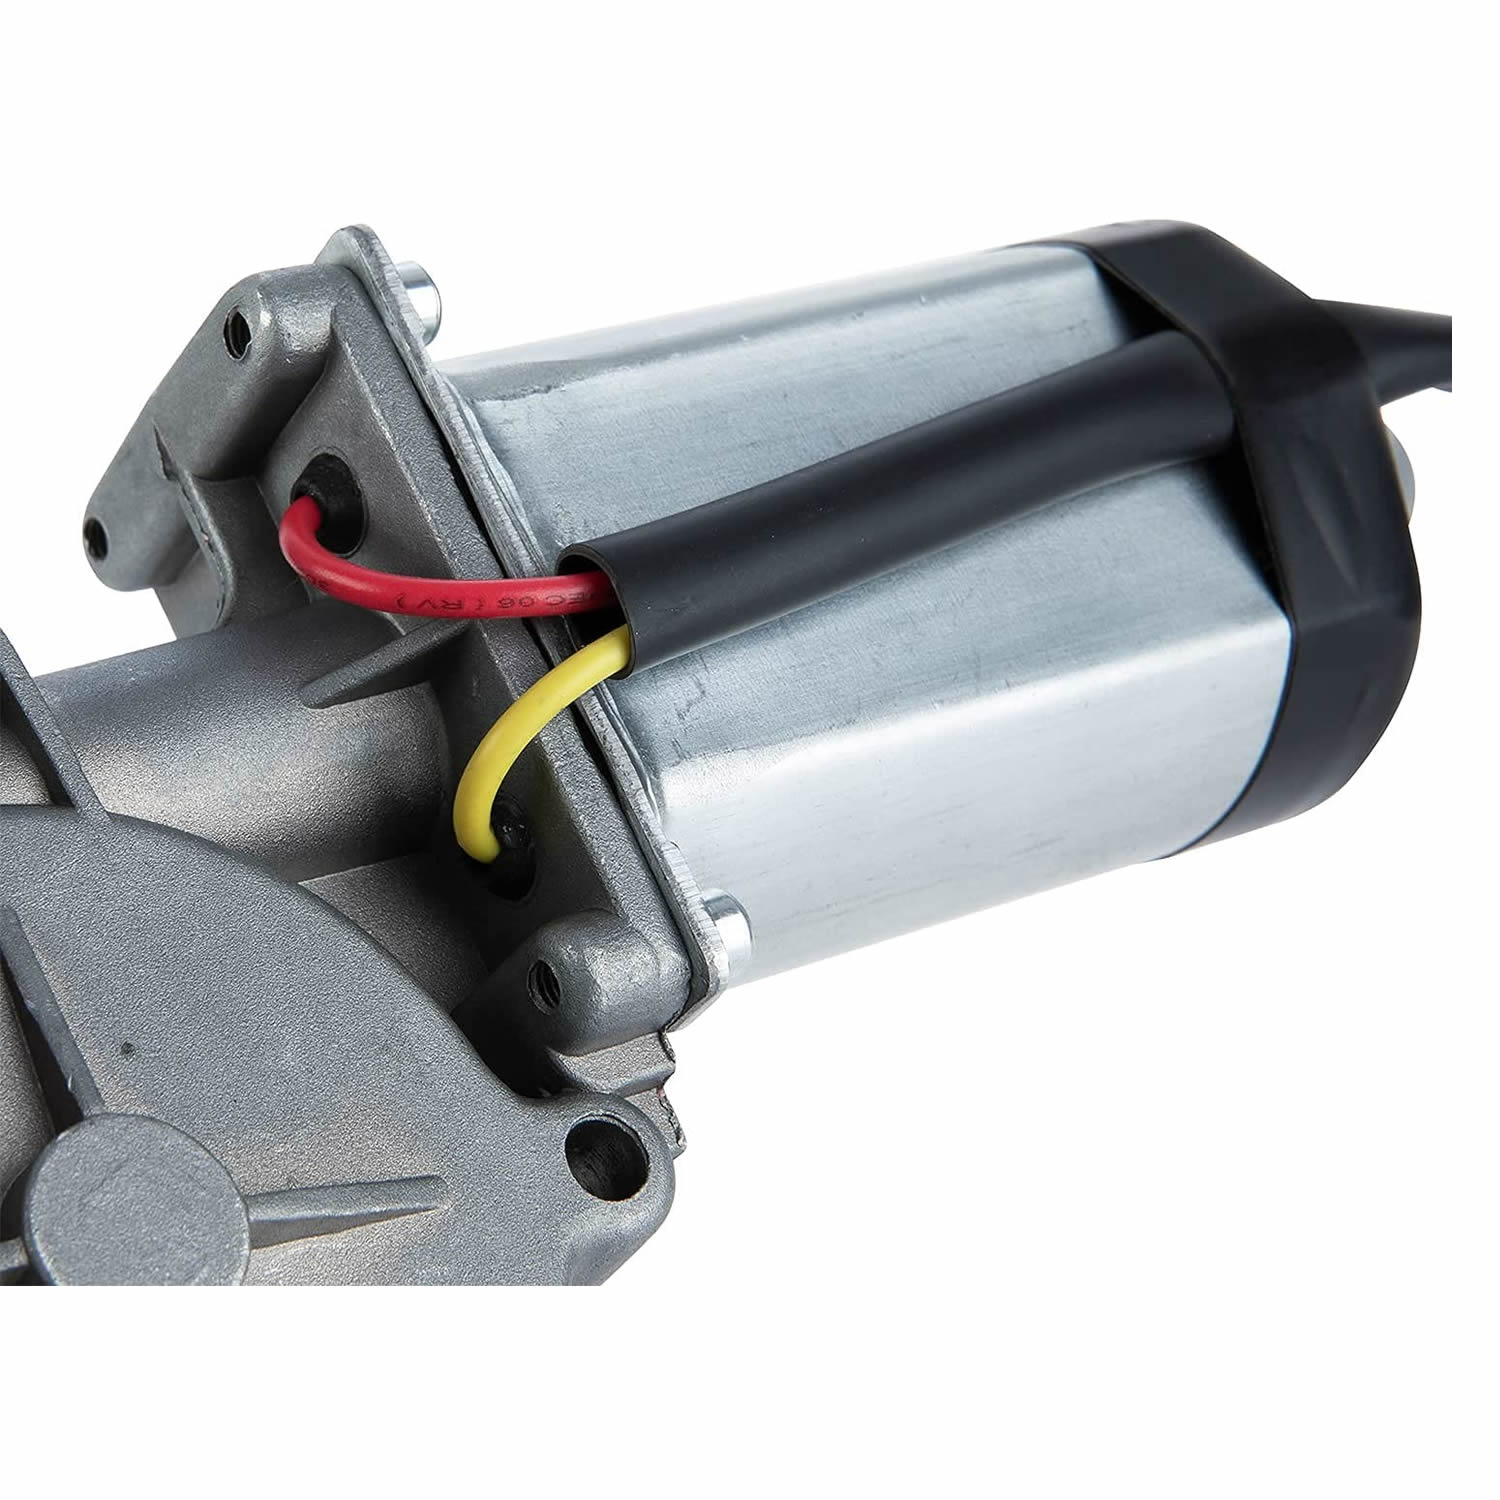 Electric RV Entry Steps Motor Components 300-1406  for All Electric Step 3001406 369506 1820124 New RV Step Motor SP1636669 enlarge